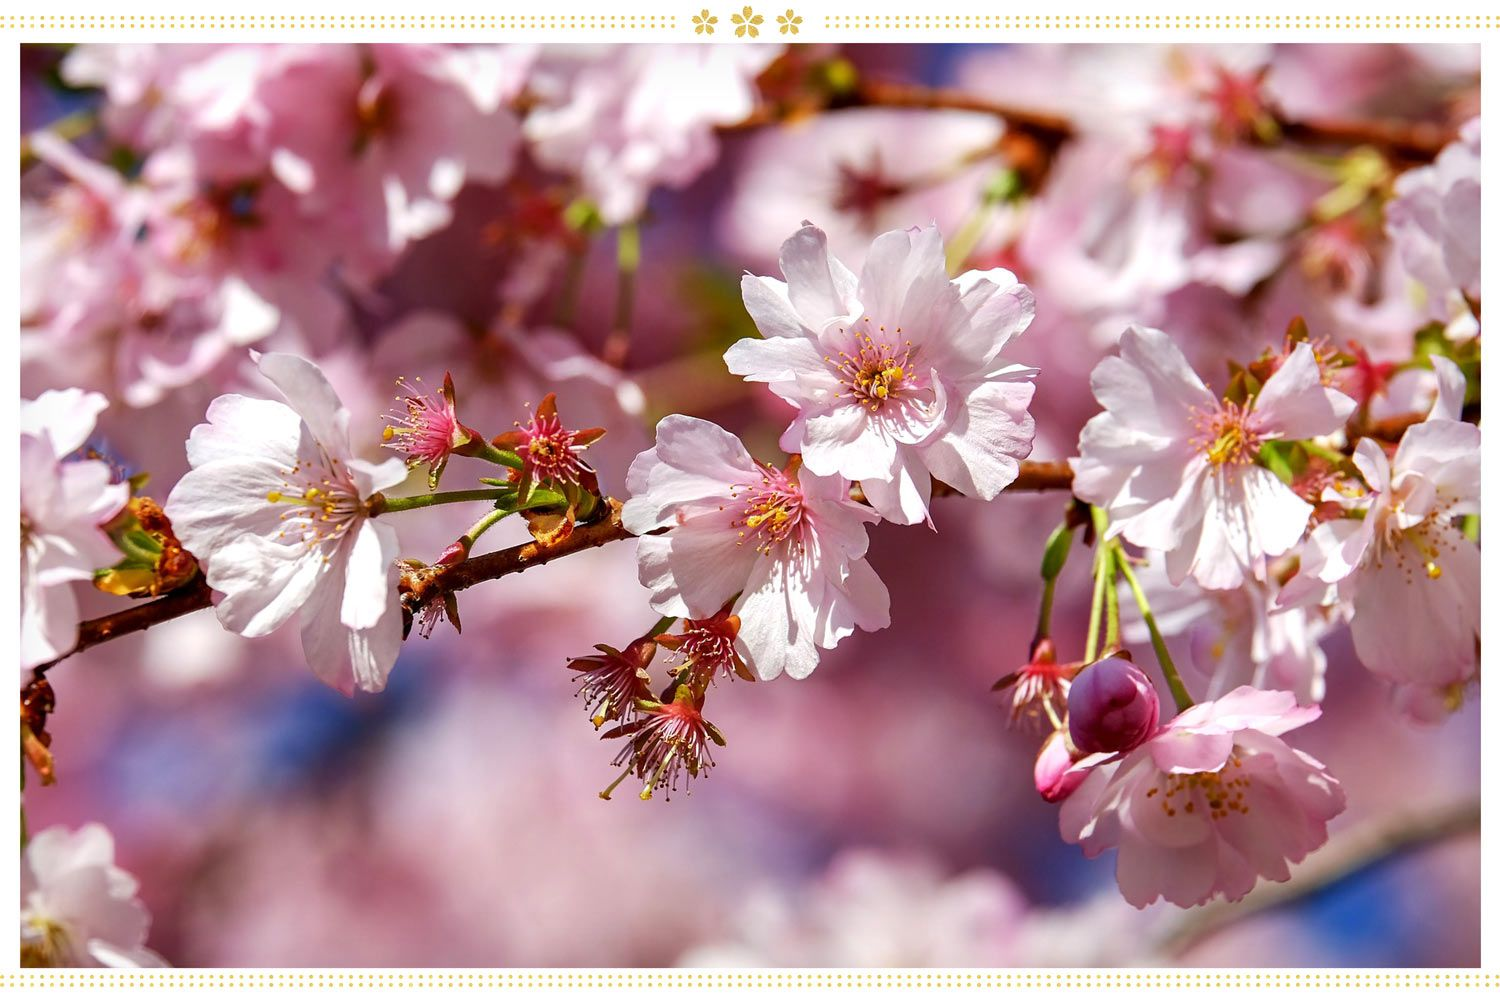 15 Japanese Flower Meanings And Where To Find Them Proflowers Blog Japanese Flowers Japanese Flower Names Flowering Cherry Tree